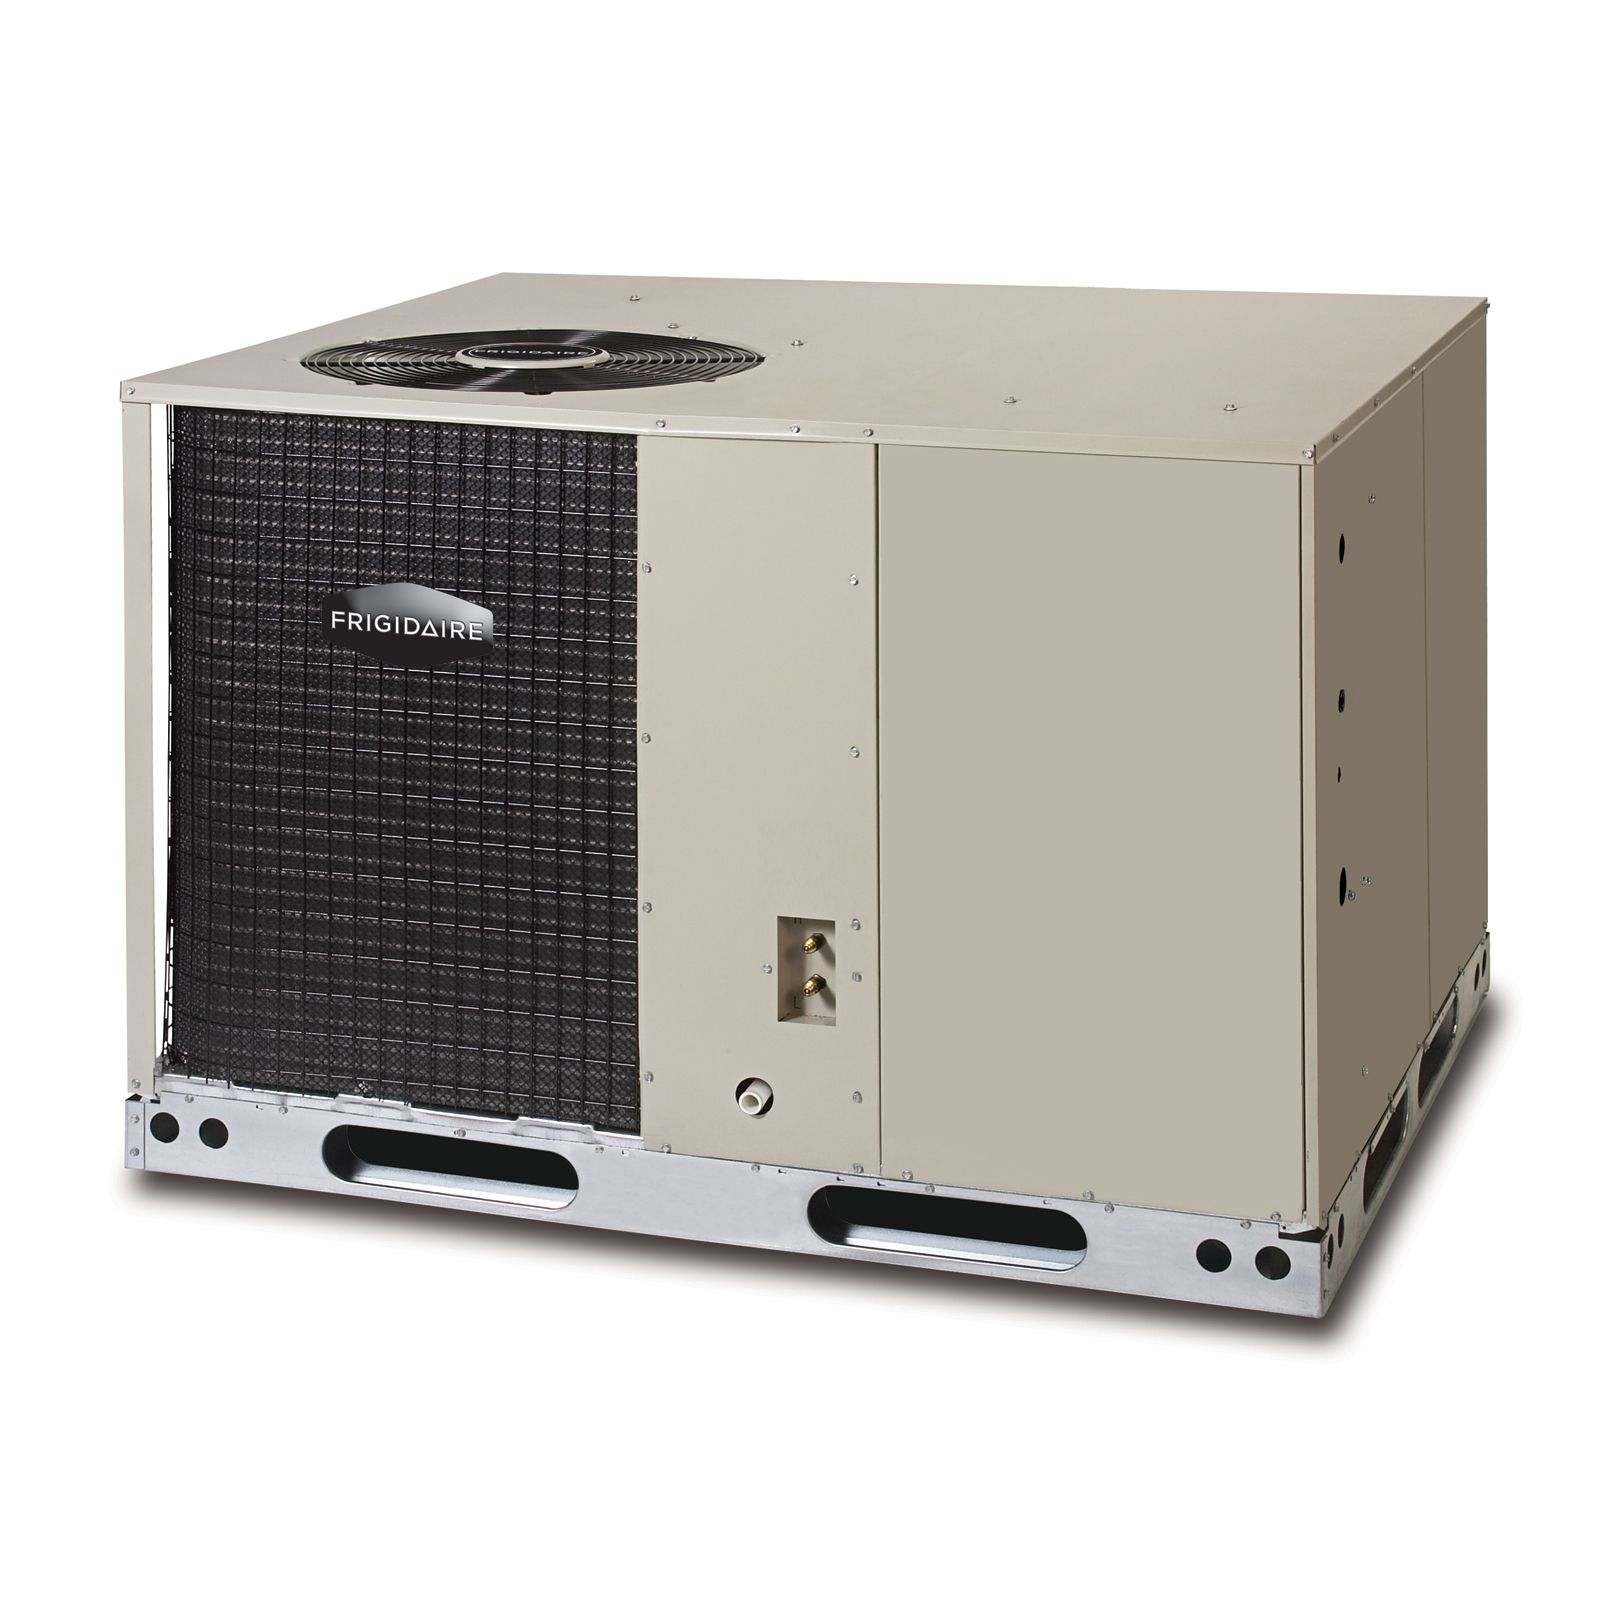 Frigidaire 922006 - Q7RE030K (AHRI 7617171) 2 1/2 Ton 14 SEER, Single Packaged Heat Pump, R410A, Single Phase